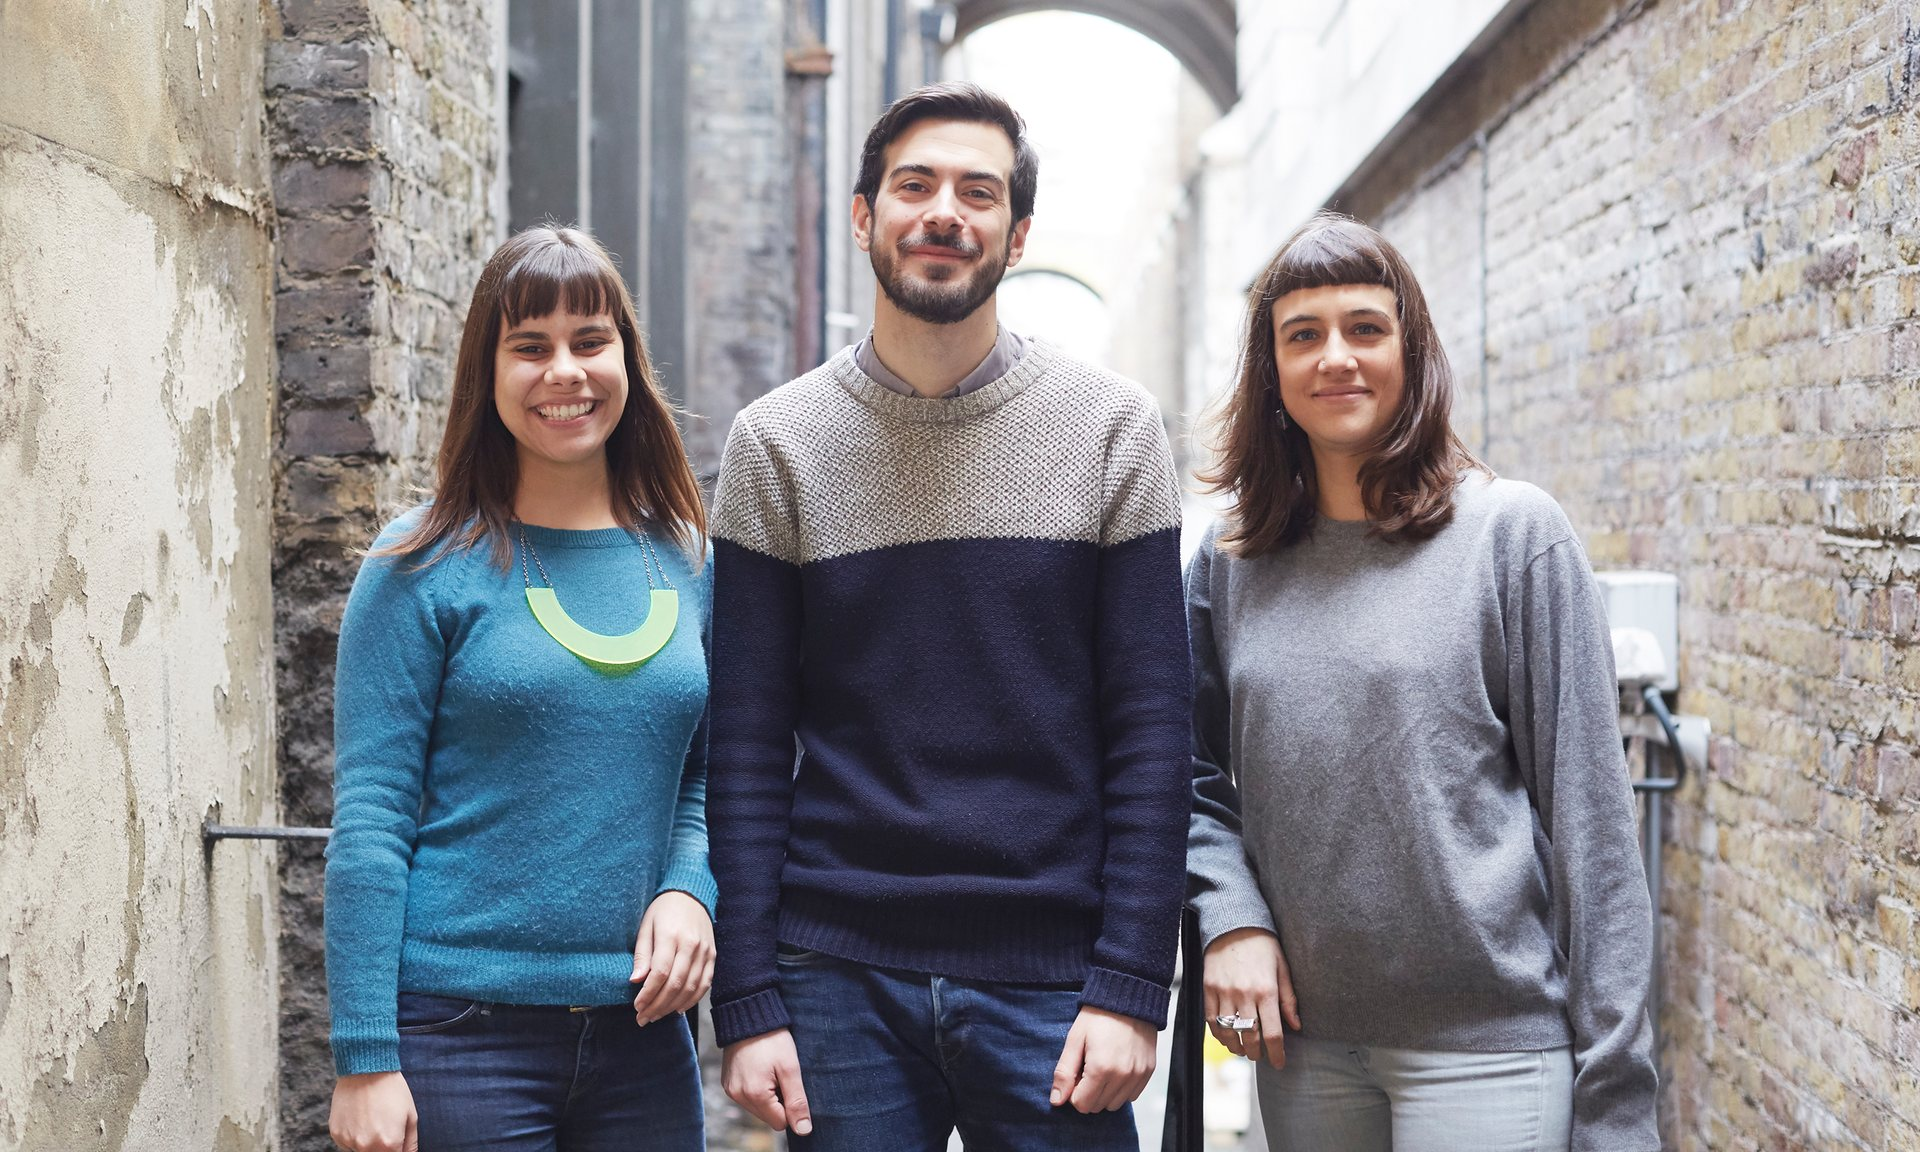 Laís de Almeida, Iban Benzal and Helena Trippe founded RentSquare last year. Photograph: Sara Lyndsey